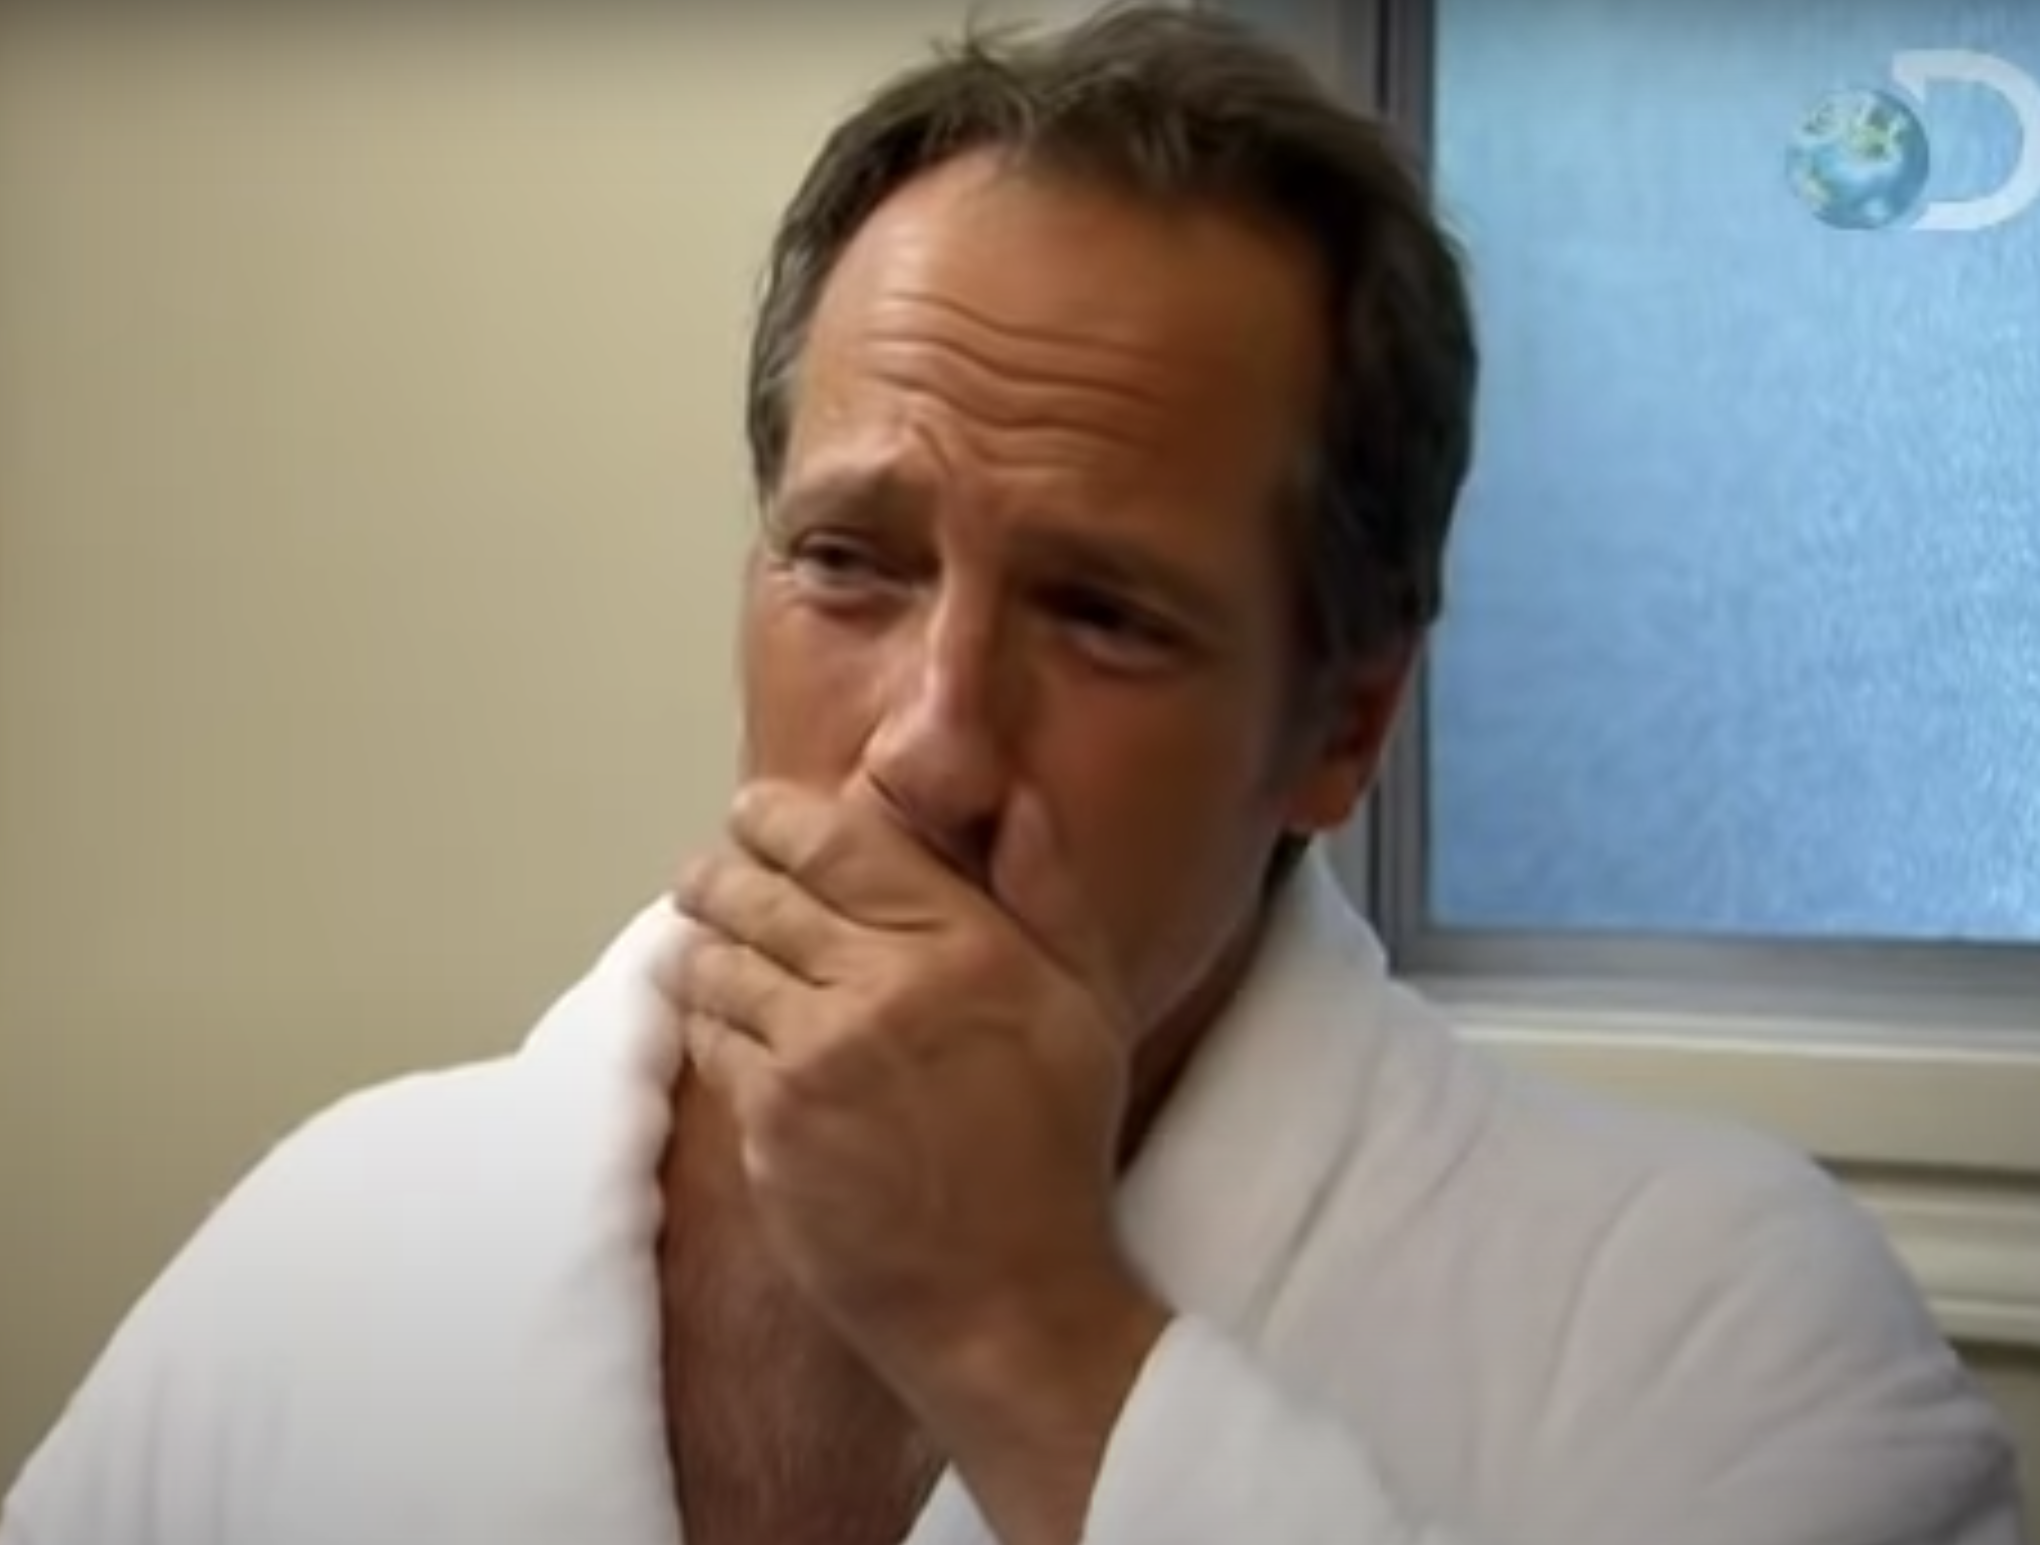 Mike Rowe wearing a bathrobe and holding his hand over his mouth with a perturbed look in his face